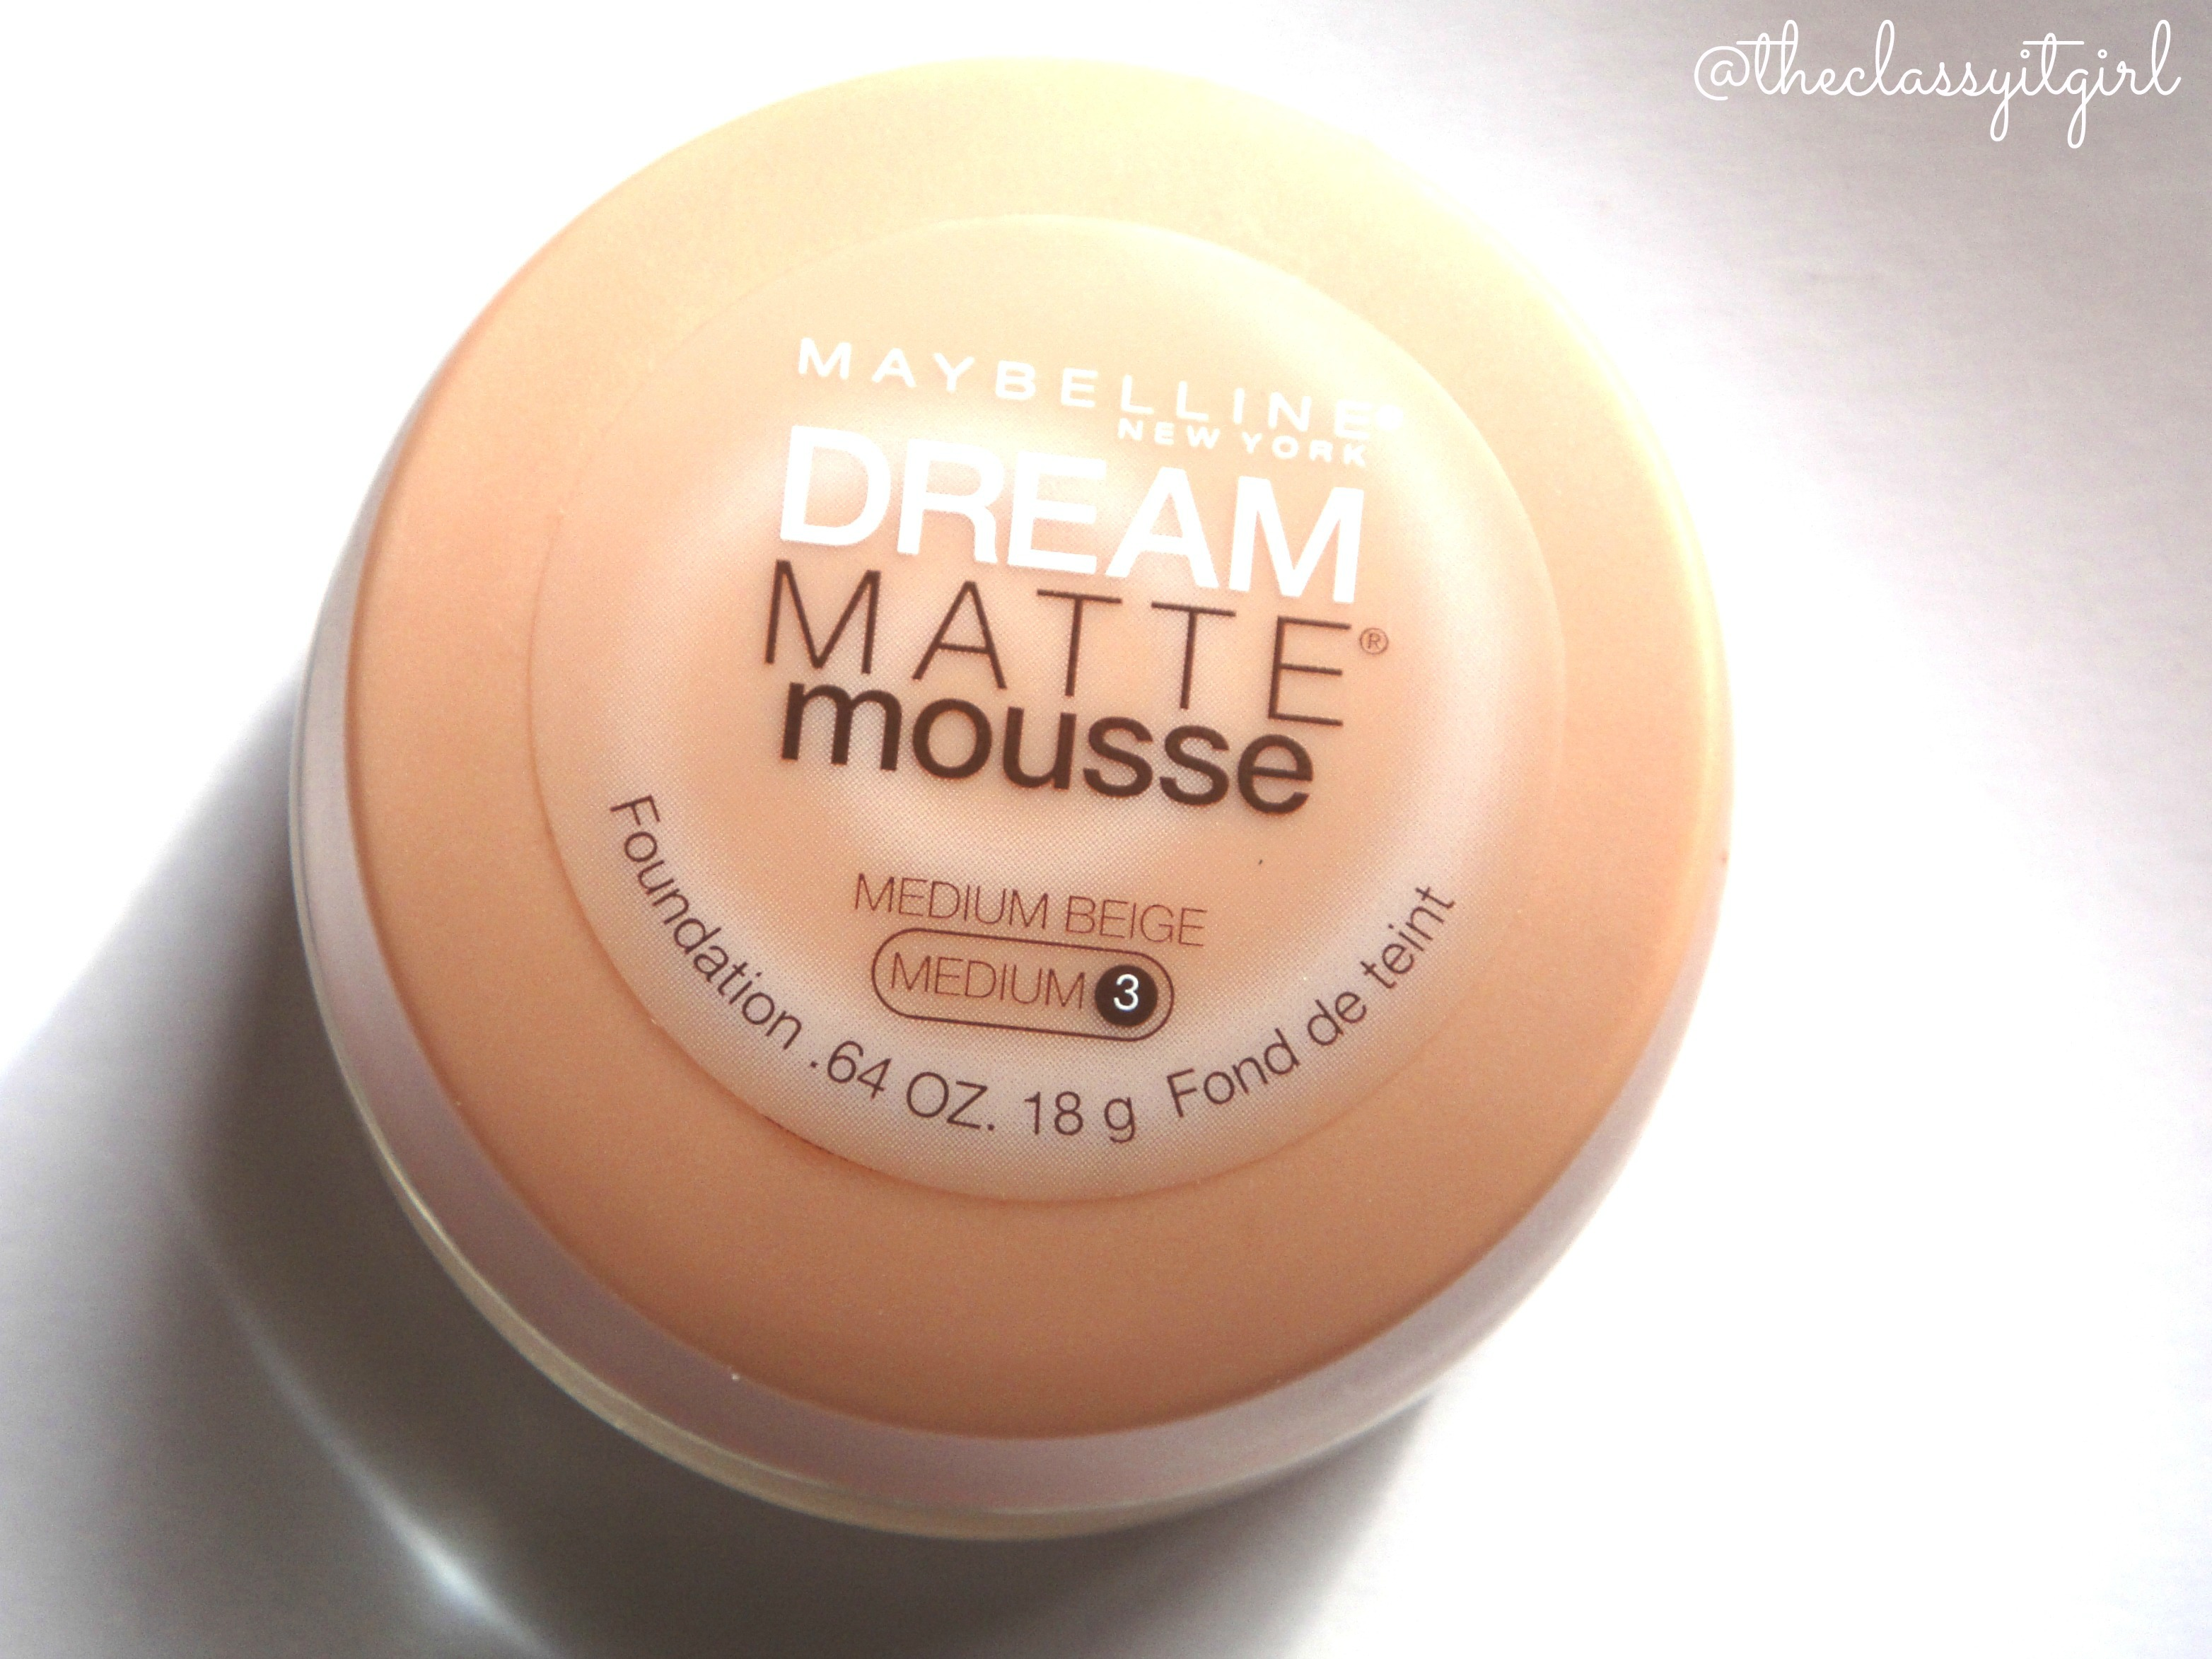 maybelline dream matte mousse foundation review demo the classy it girl. Black Bedroom Furniture Sets. Home Design Ideas